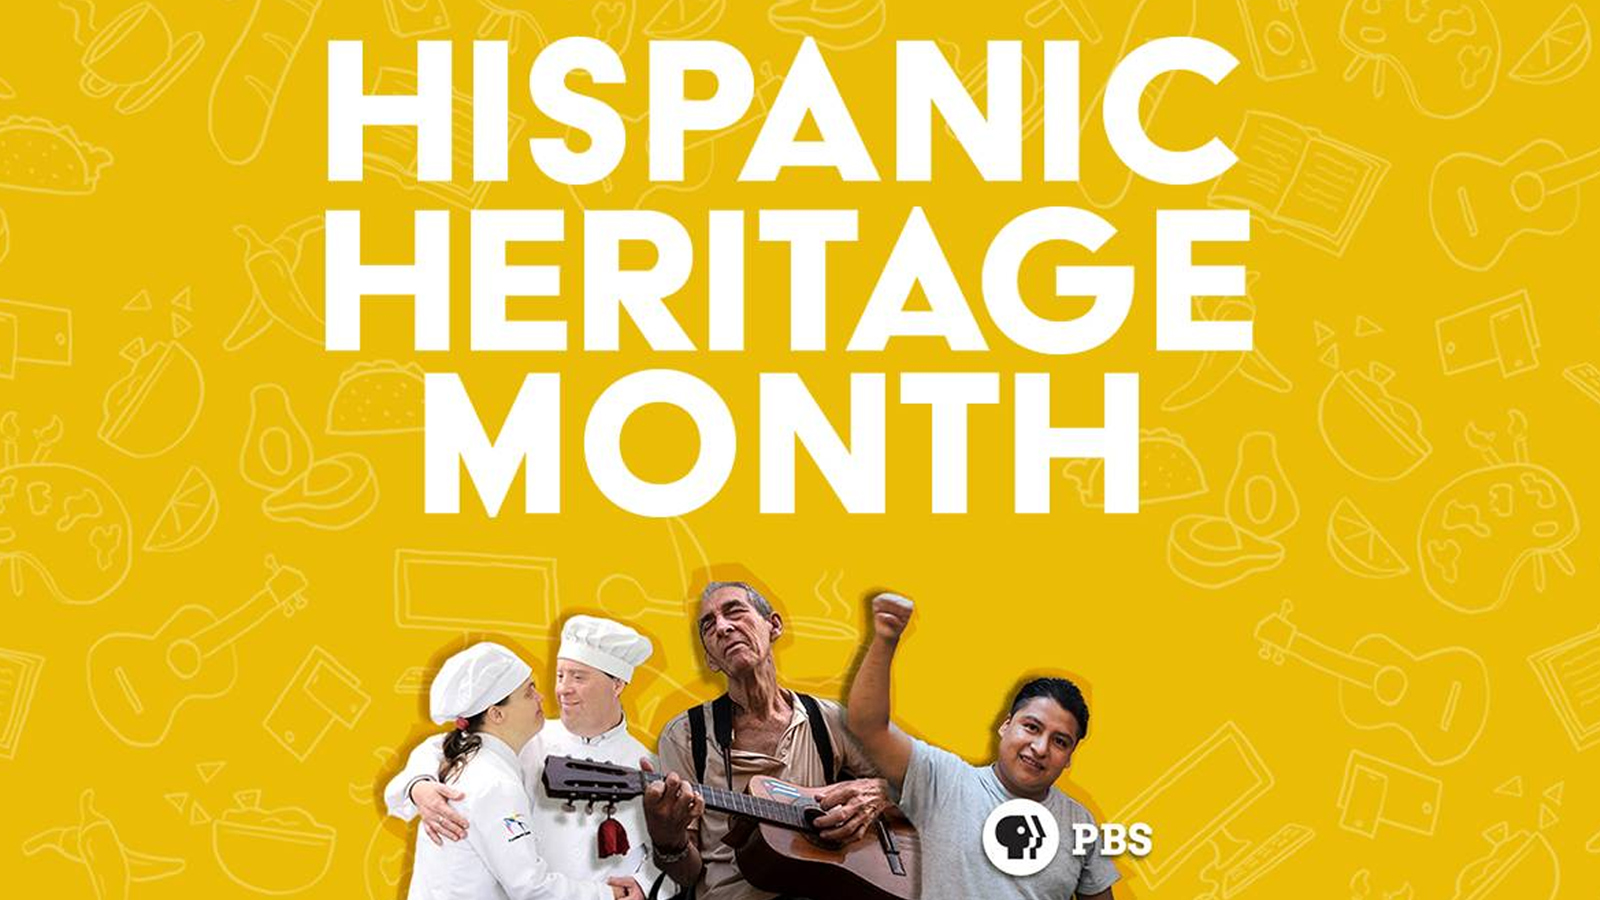 Celebrate Hispanic Heritage Month!